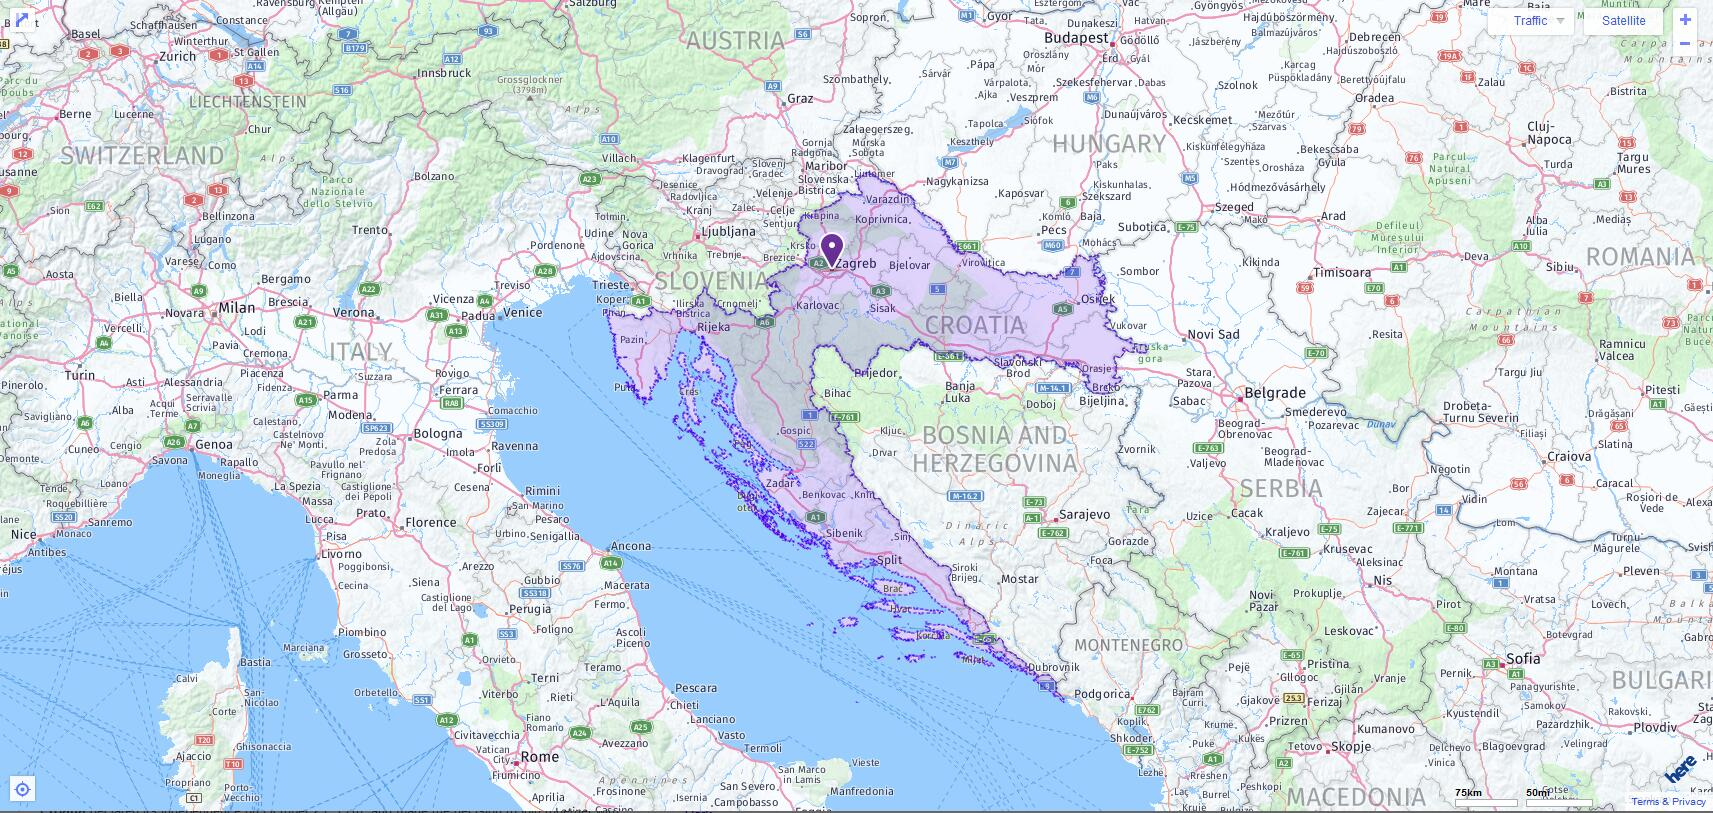 ACT Test Centers and Dates in Croatia